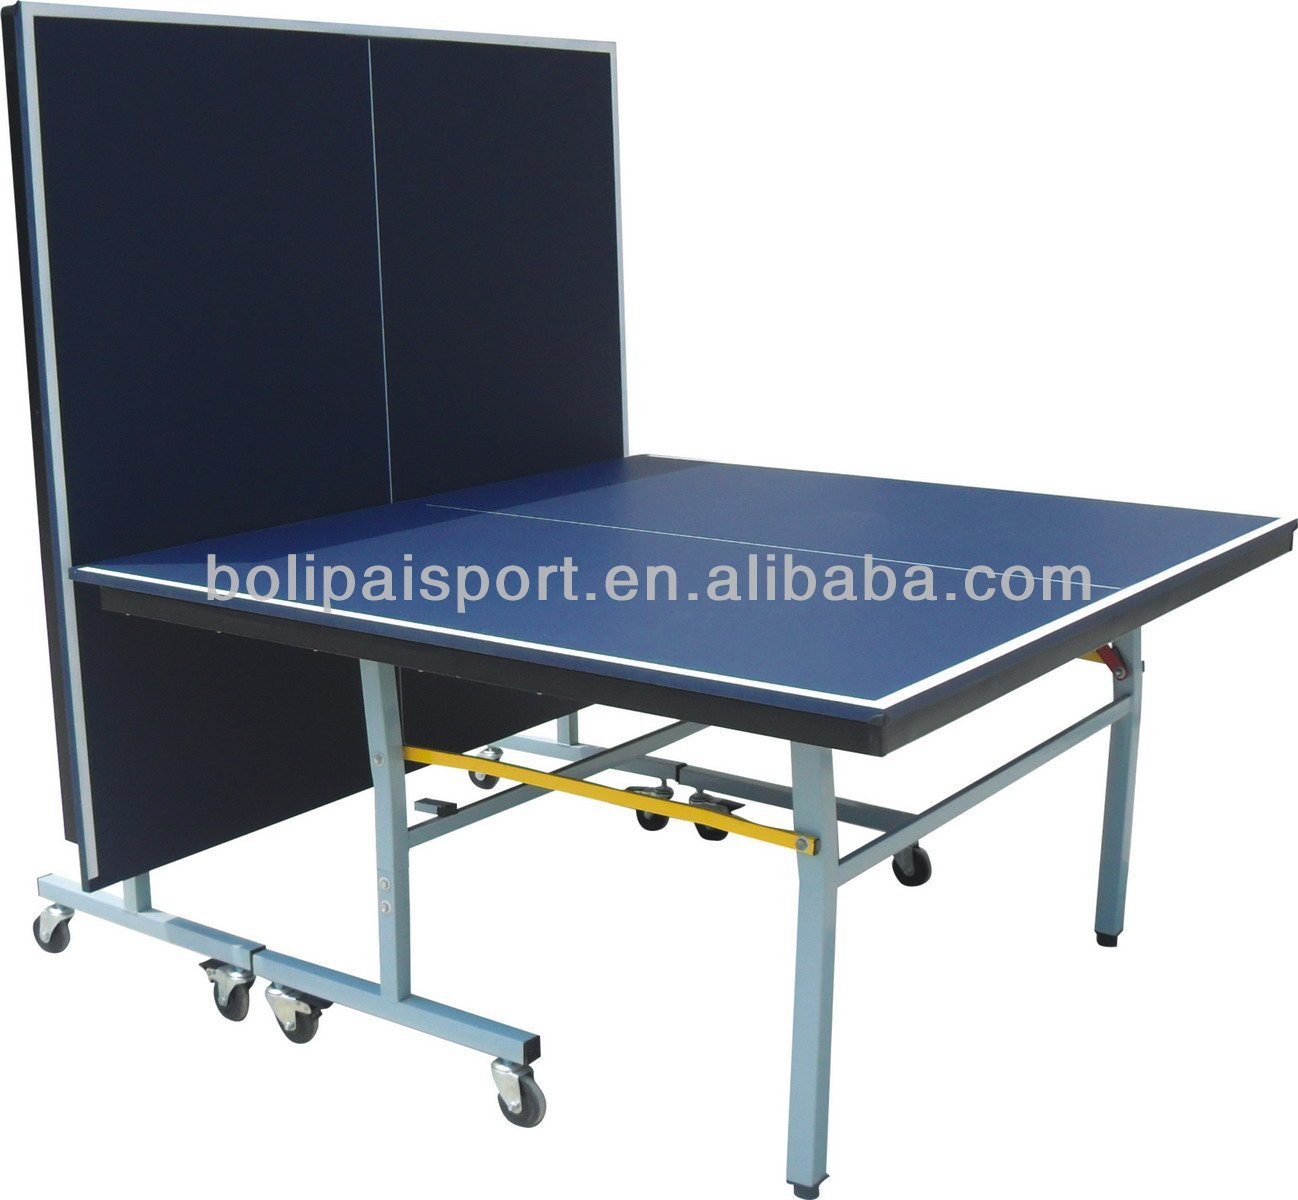 Ping Pong Table Wheels, Ping Pong Table Wheels Suppliers And Manufacturers  At Alibaba.com